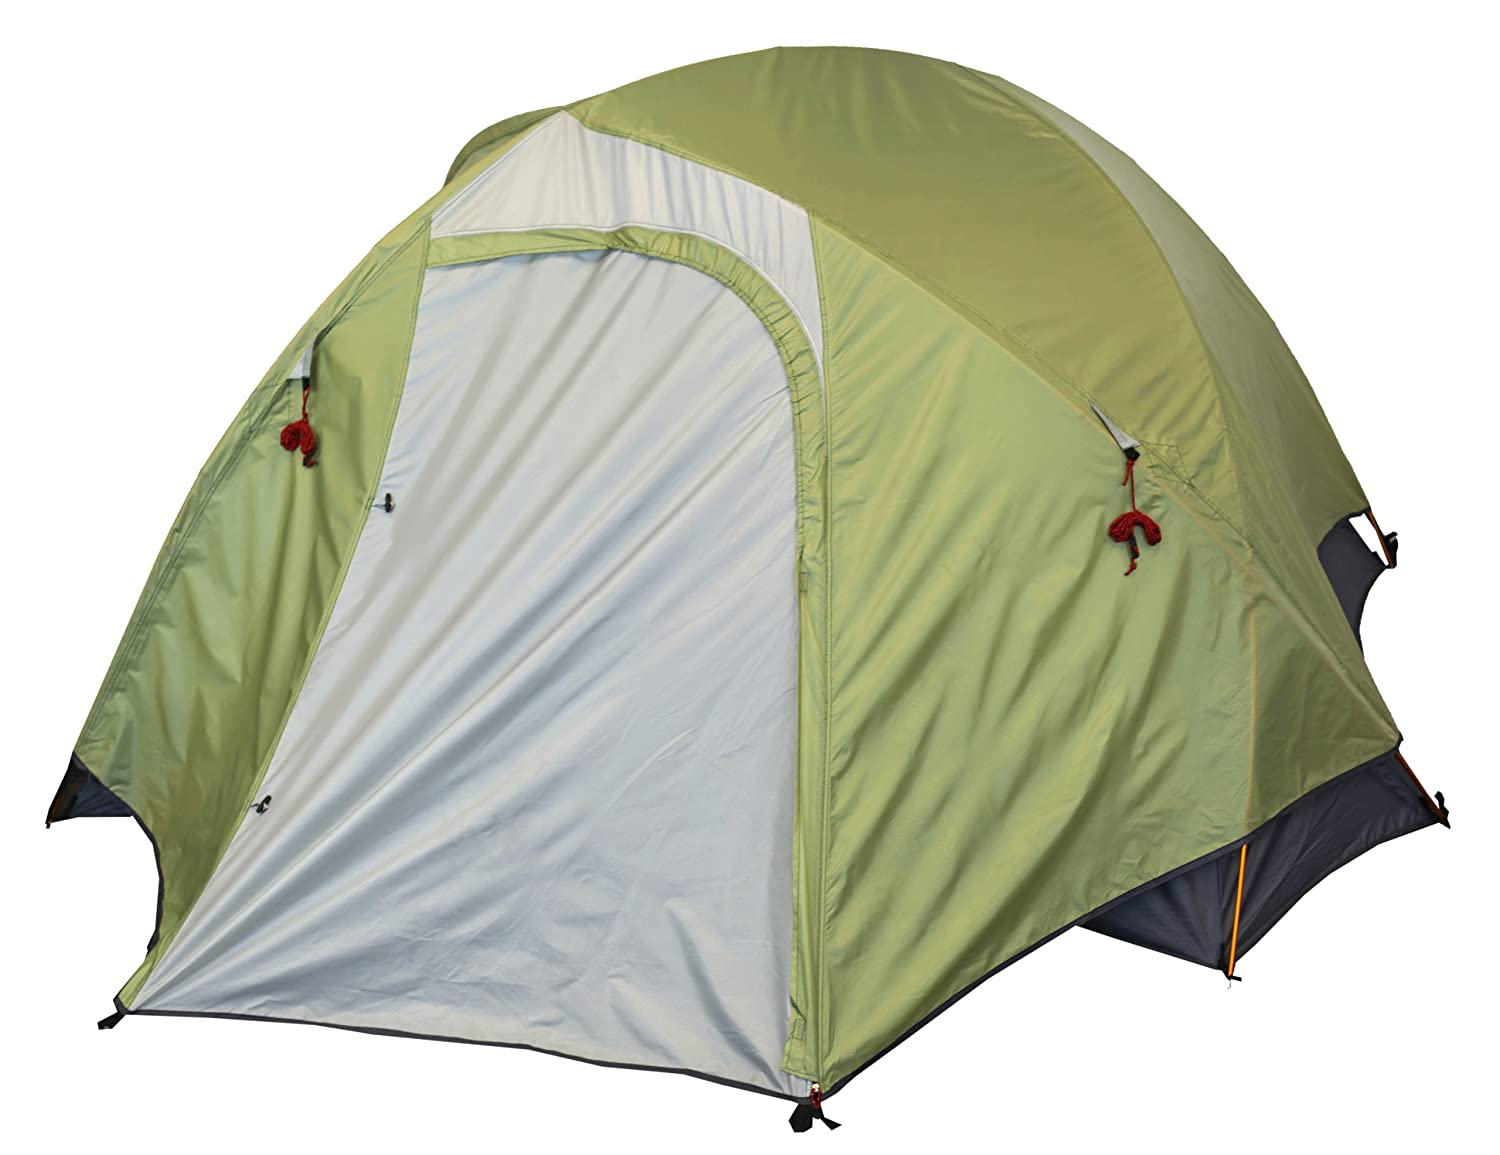 100 X 70-50-Inch Height, 7.1-Pounds Ledge Sports Recluse Lightweight 3 Person Tent